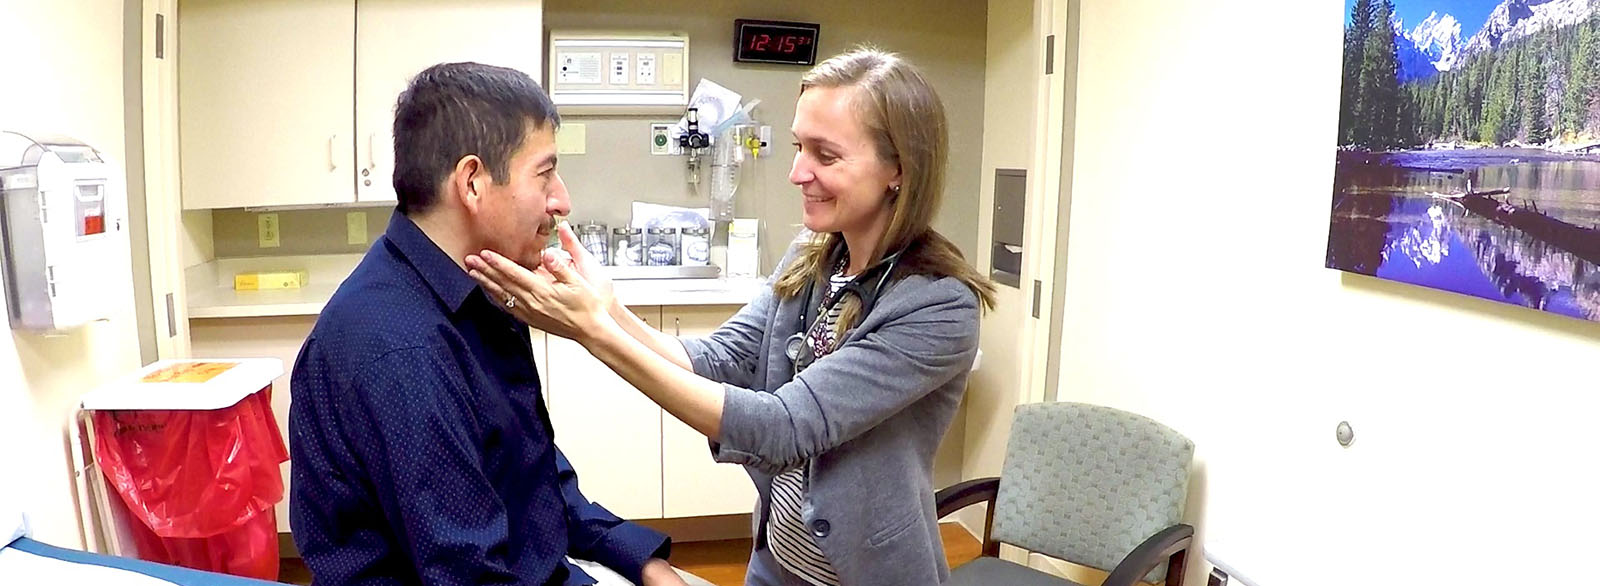 Dr. Hale seeing a patient at VIMCare Clinic.